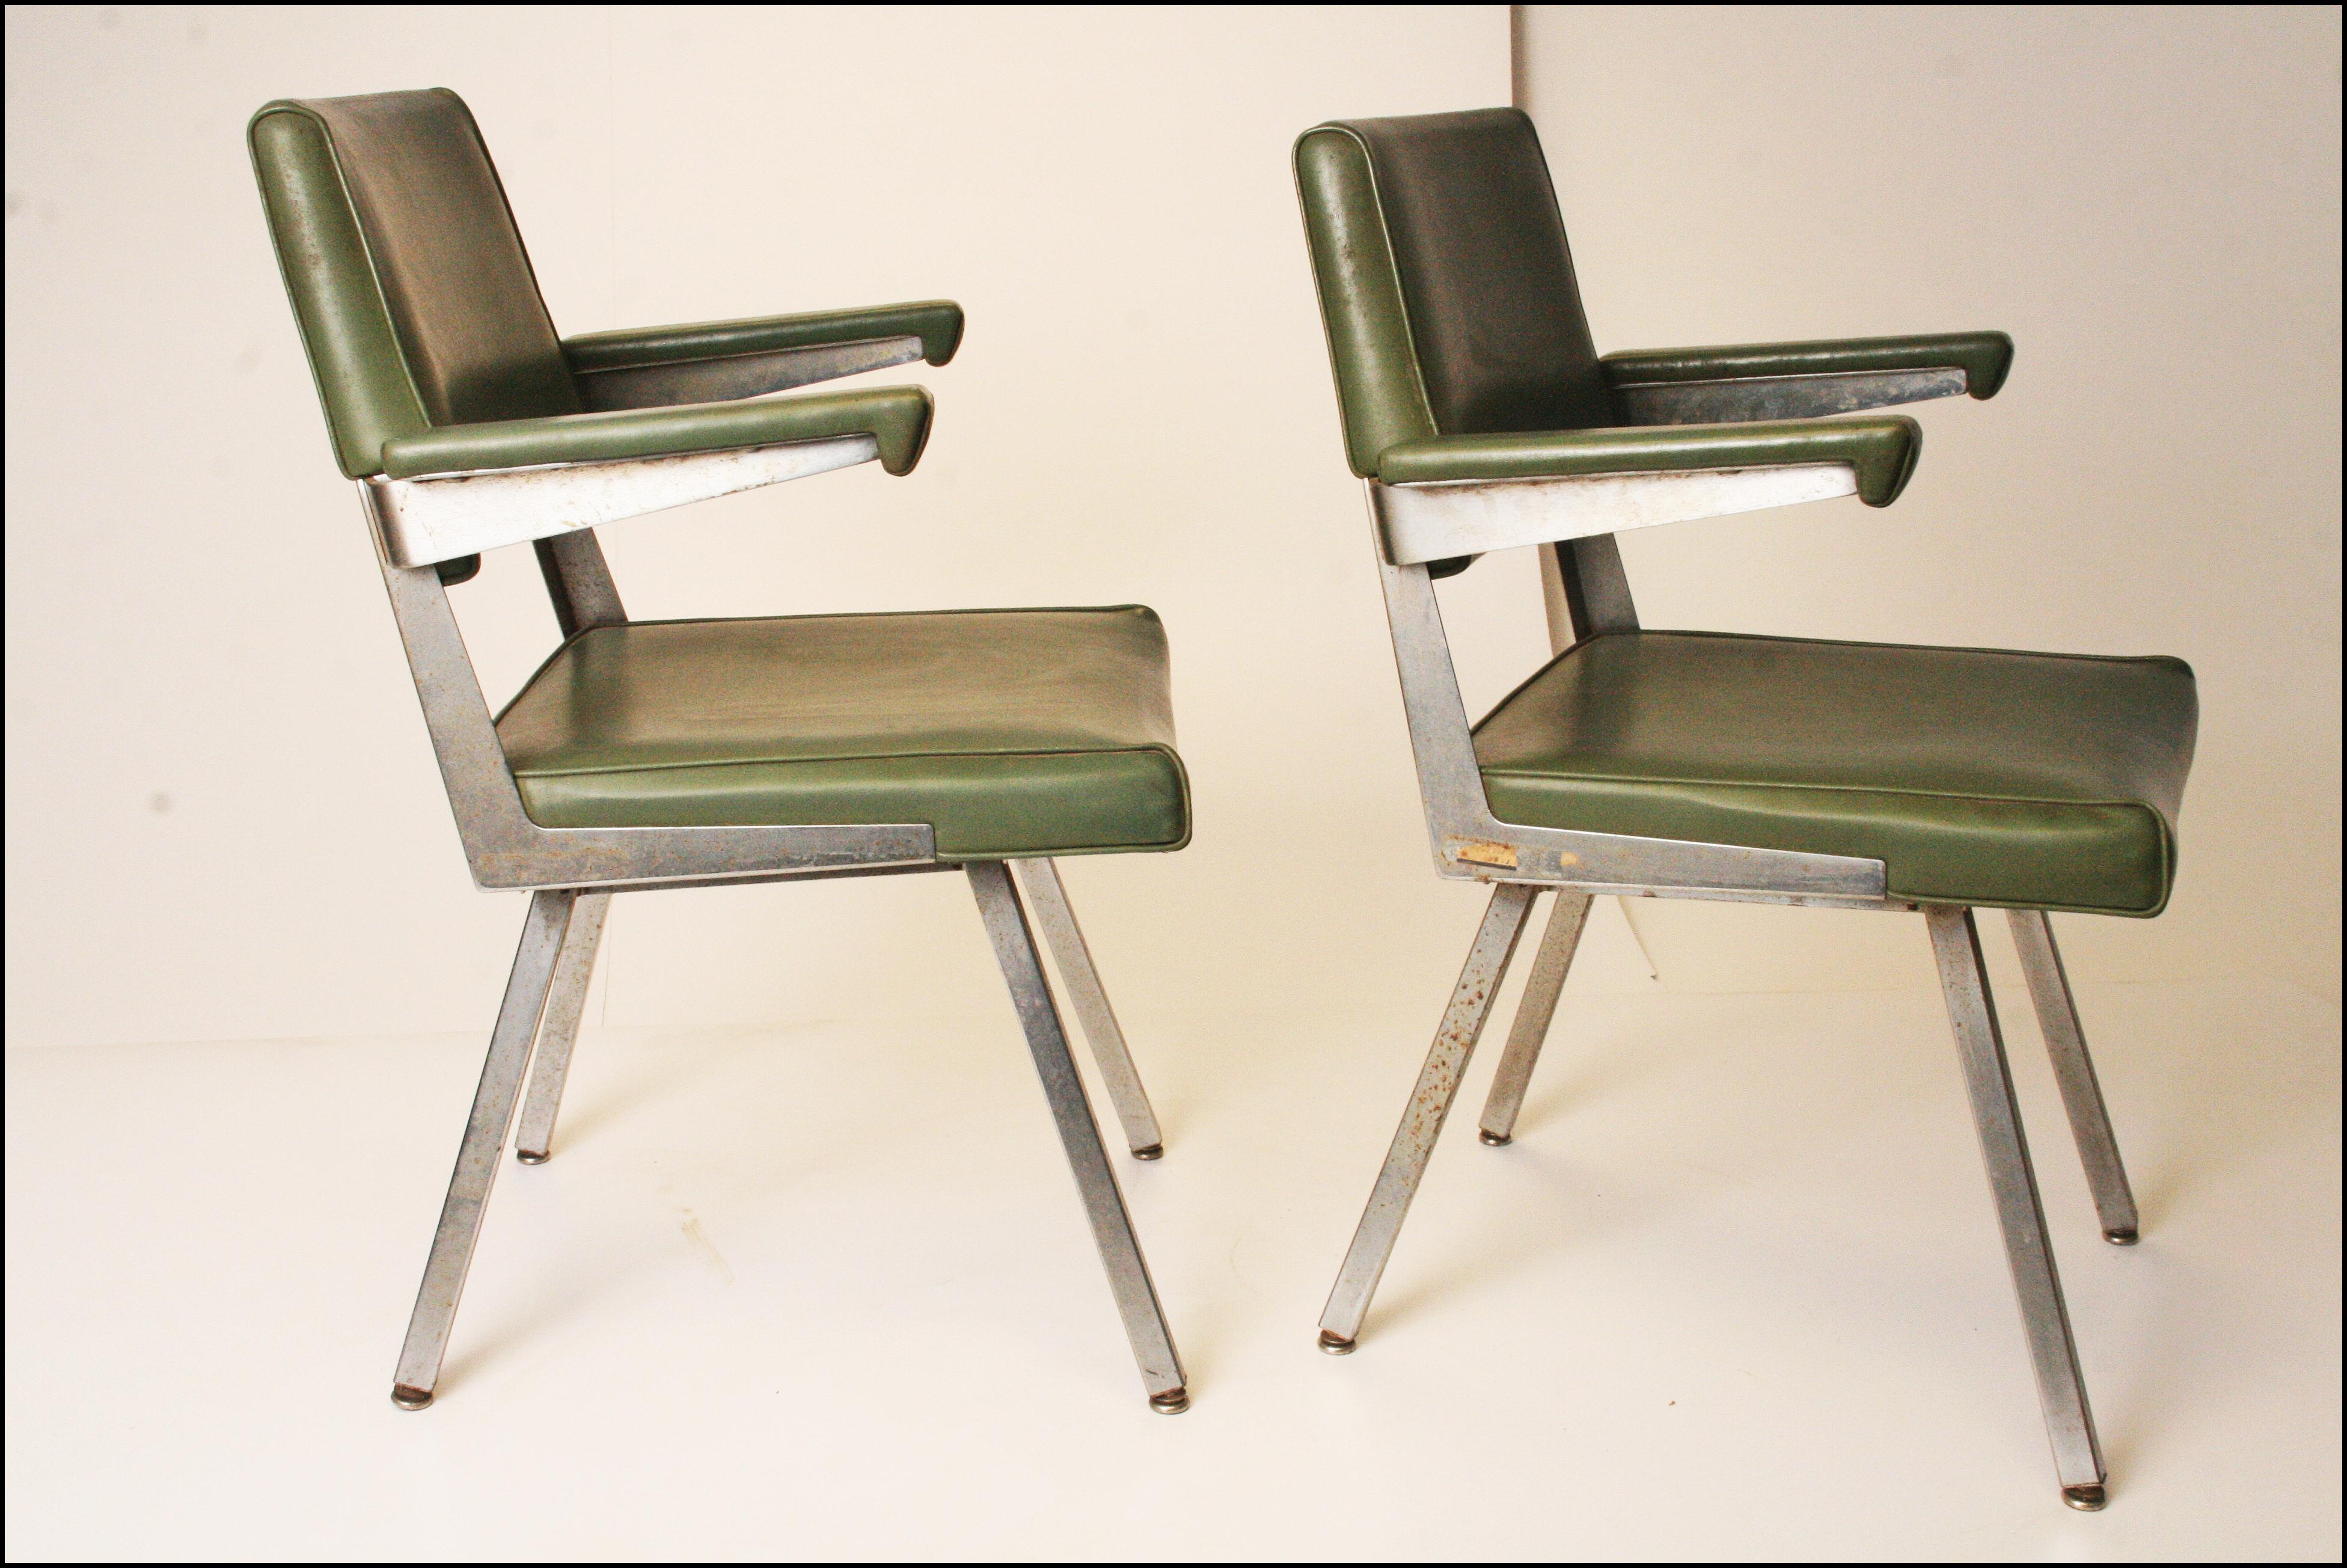 Exceptional Harter Mid Century Modern Industrial Office Chairs  A Pair   Image 4 Of 11